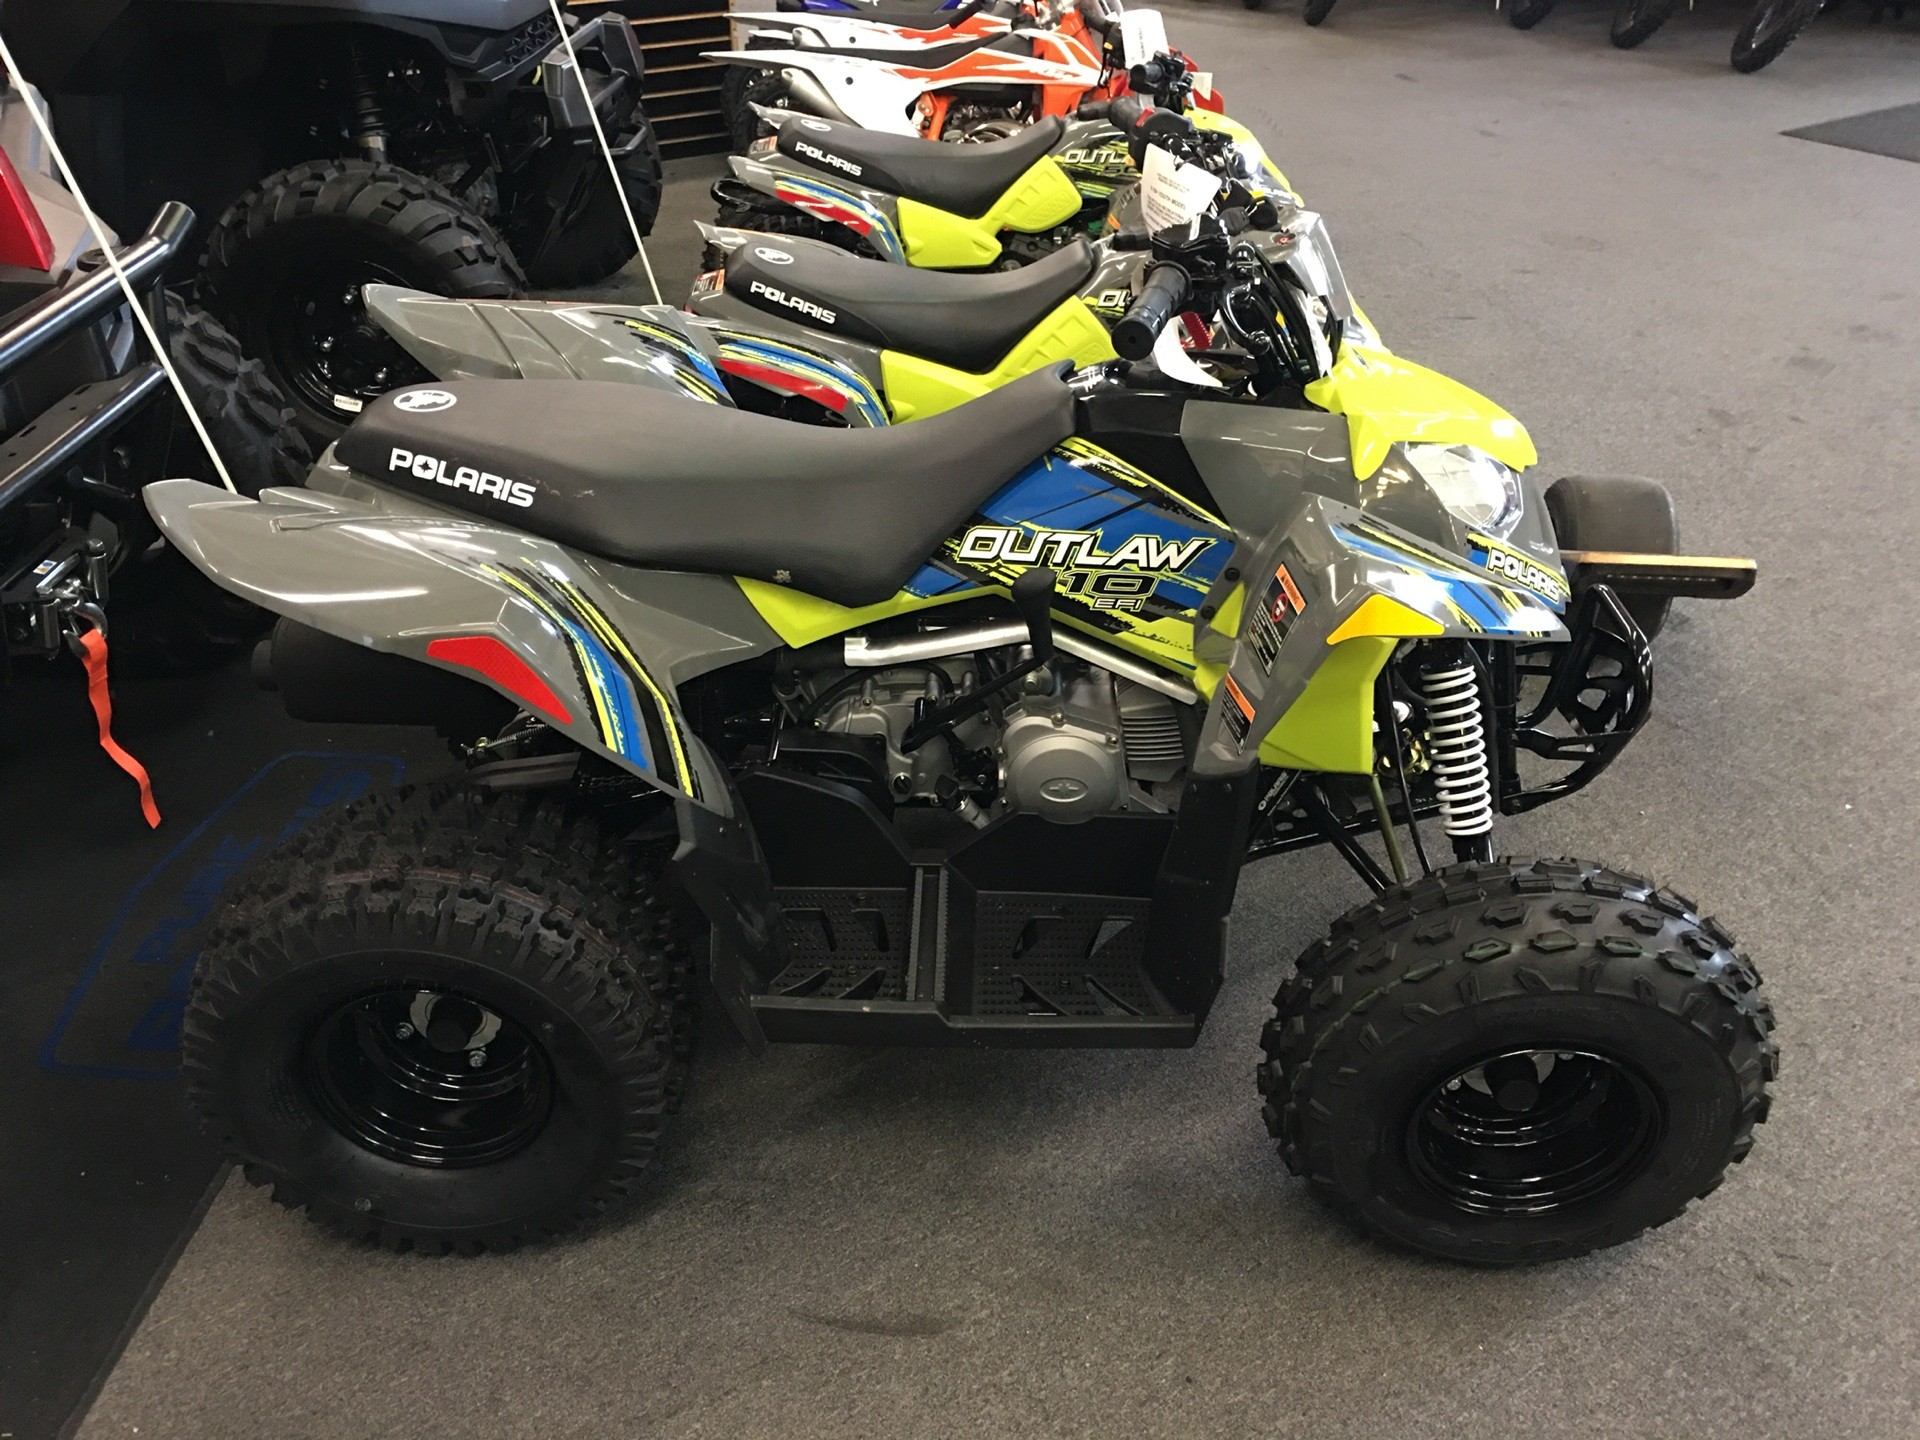 2020 Polaris Outlaw 110 in Paso Robles, California - Photo 1